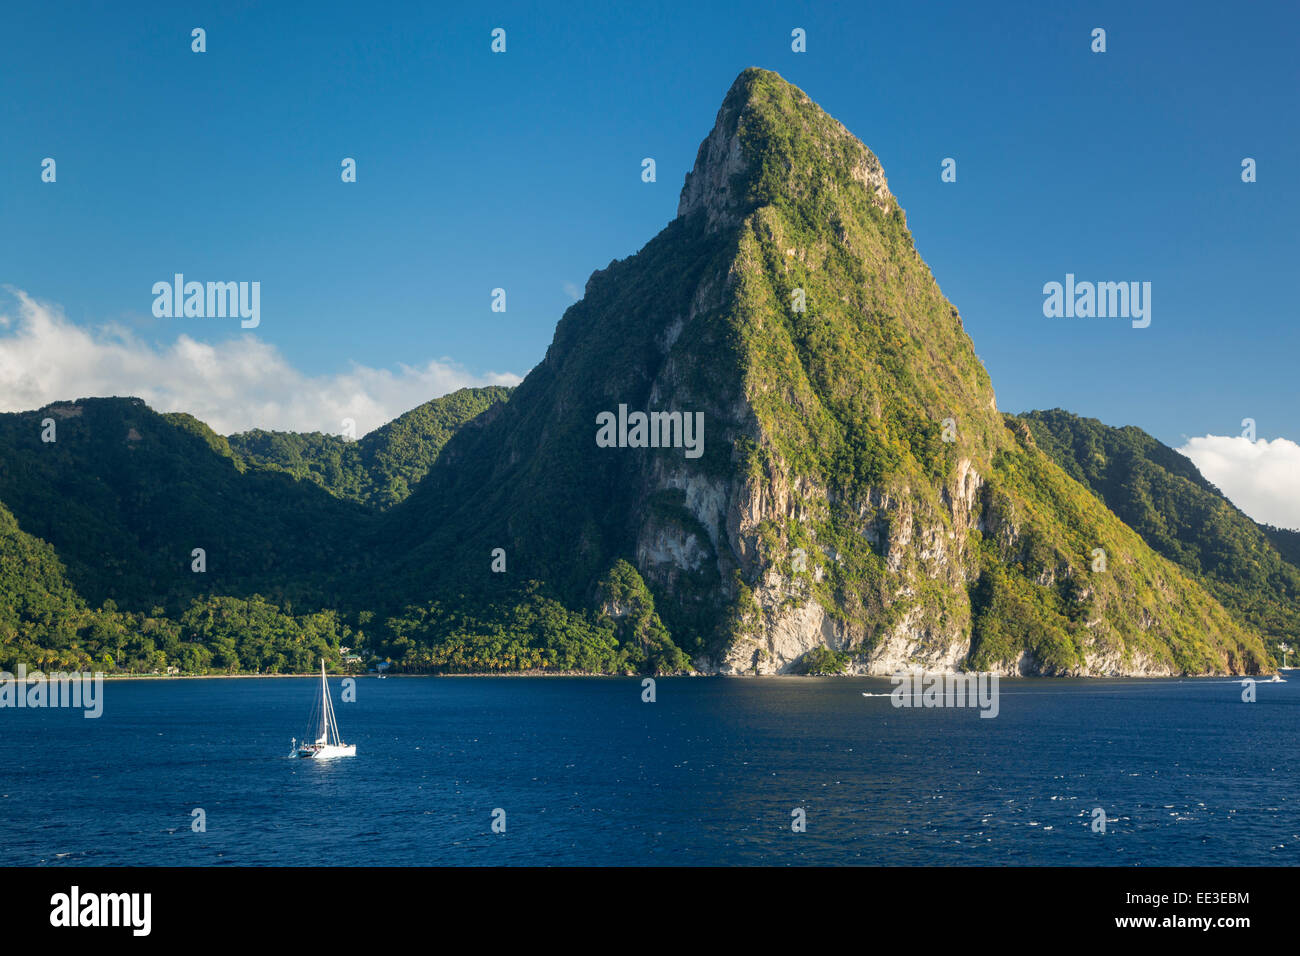 Petite Piton near Soufriere, St Lucia, West Indies - Stock Image